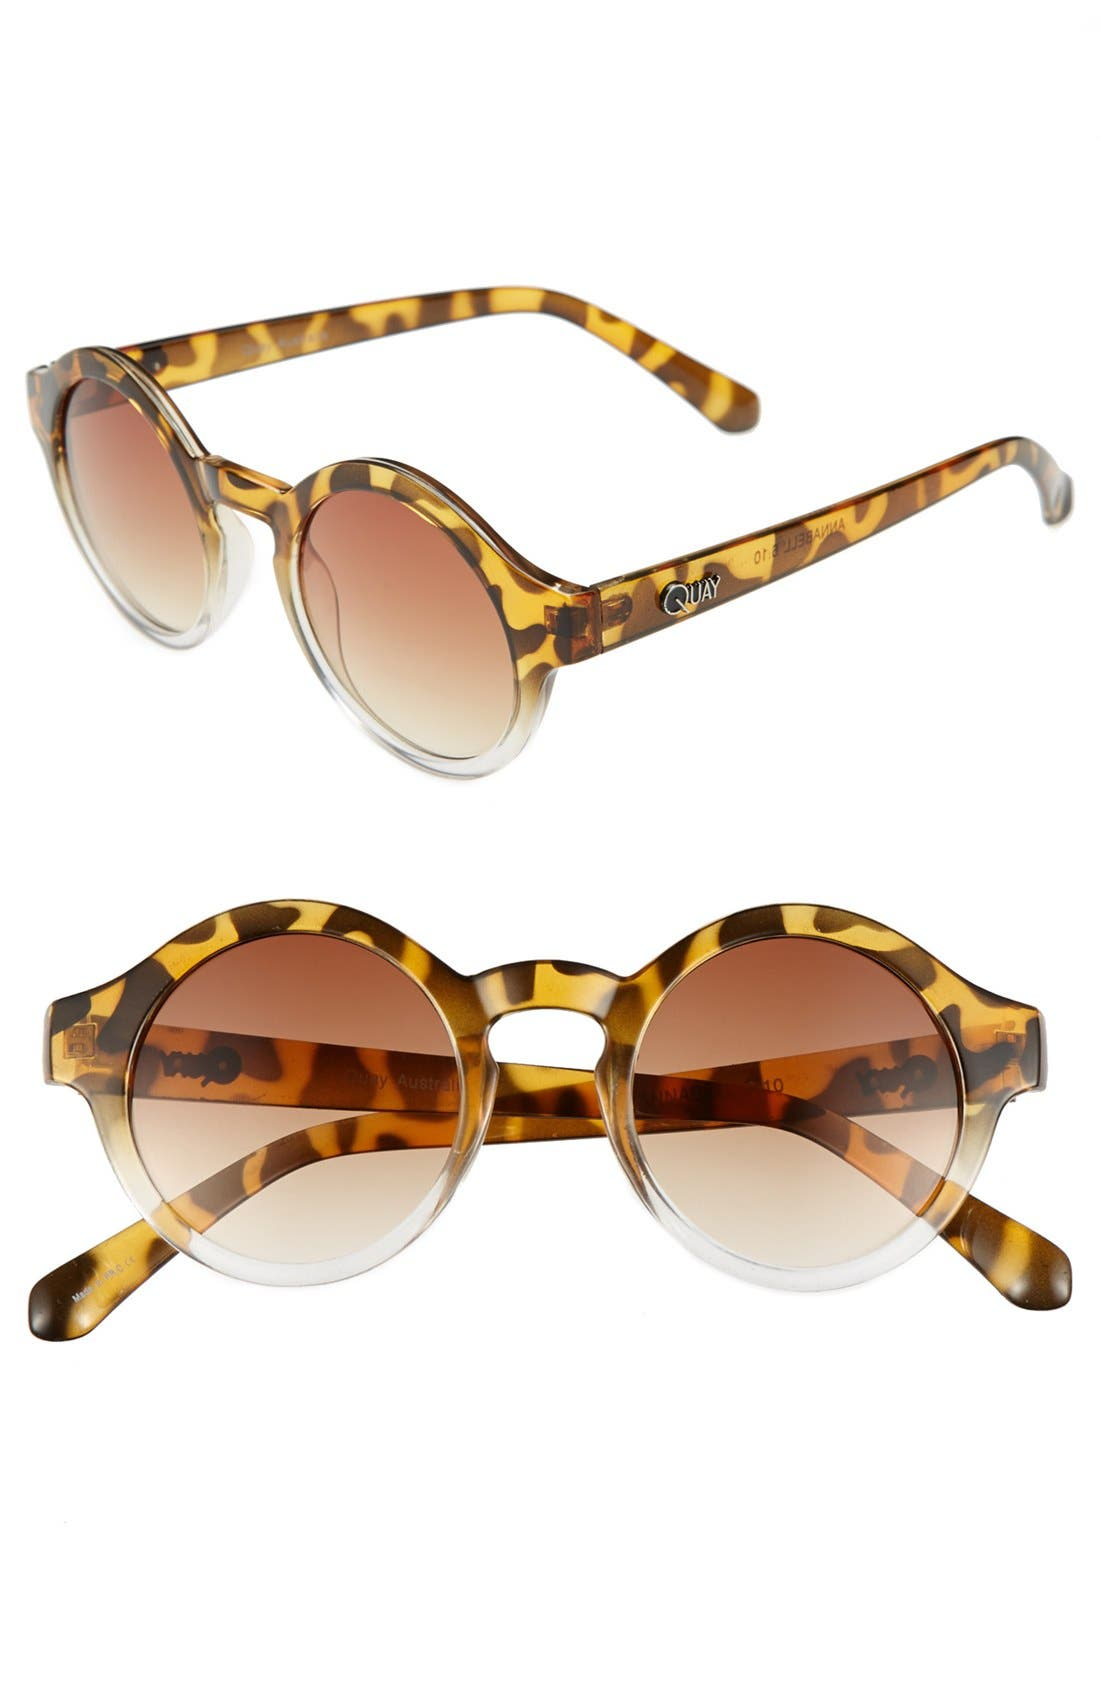 Main Image - Quay 50mm Round Sunglasses